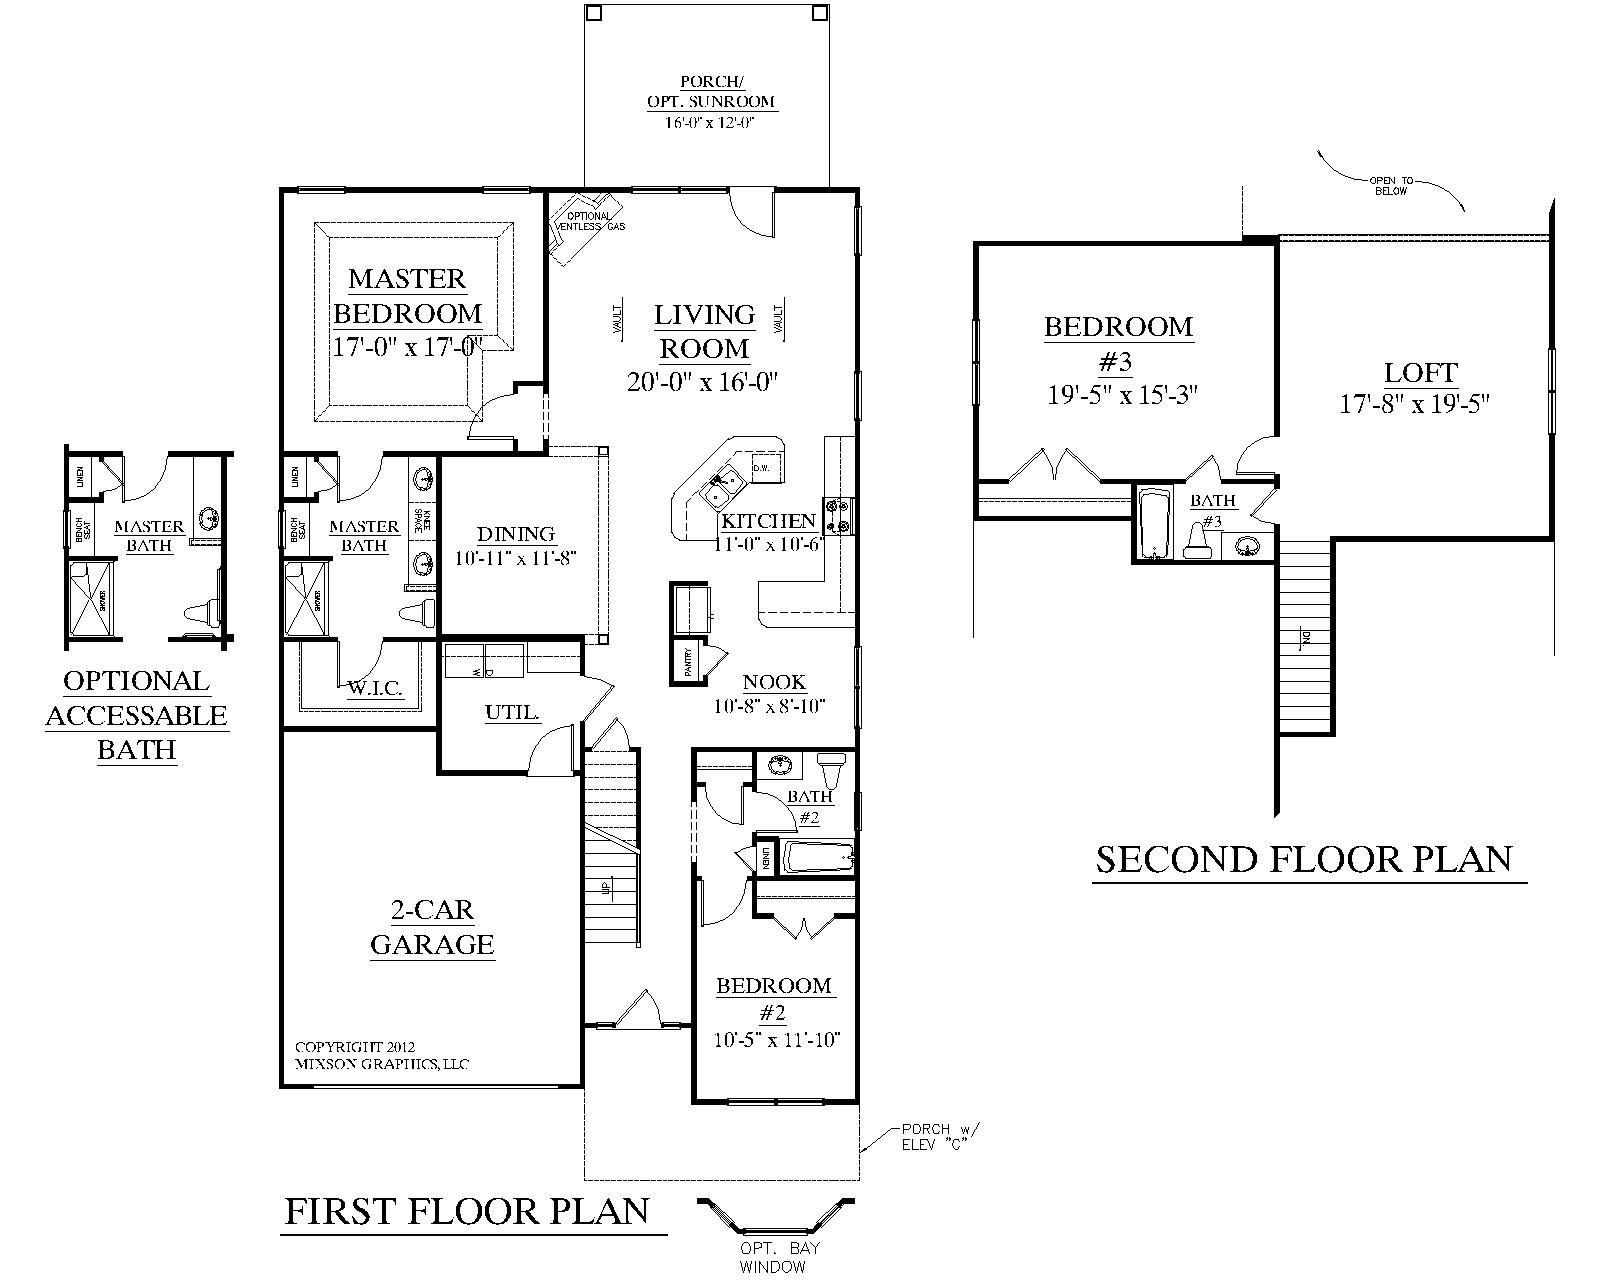 House plan 2545 englewood floor plan traditional house plan with 3 bedrooms and 3 full baths large open living area master suite and second bedroom